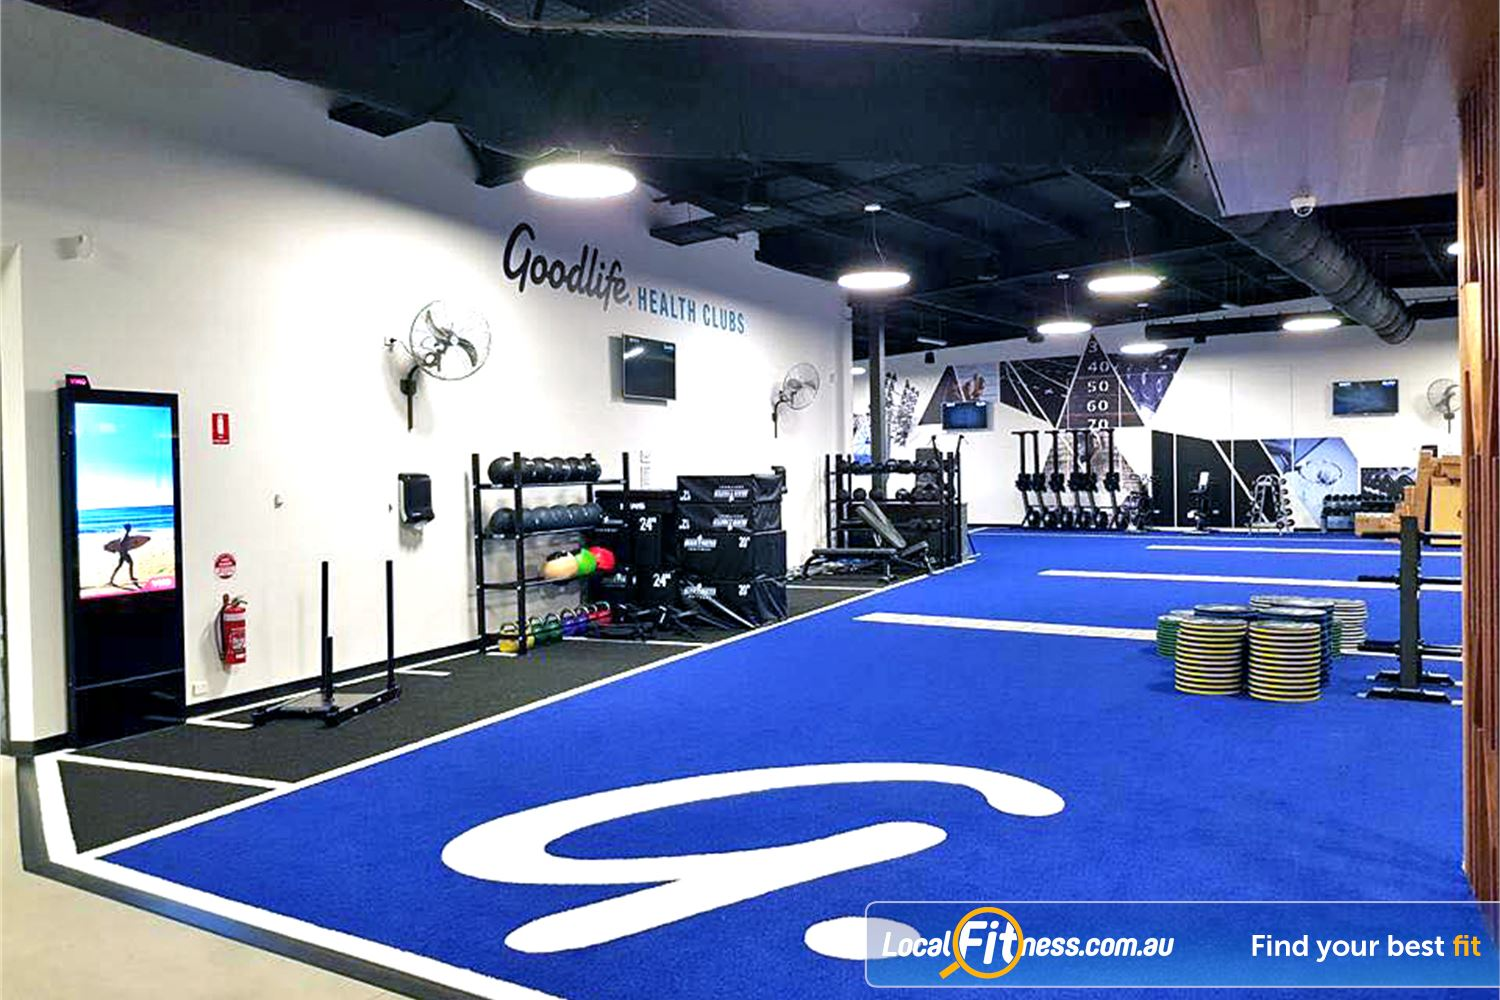 Goodlife Health Clubs Near Seaford Heights Get into functional training in our Noarlunga HIIT gym.